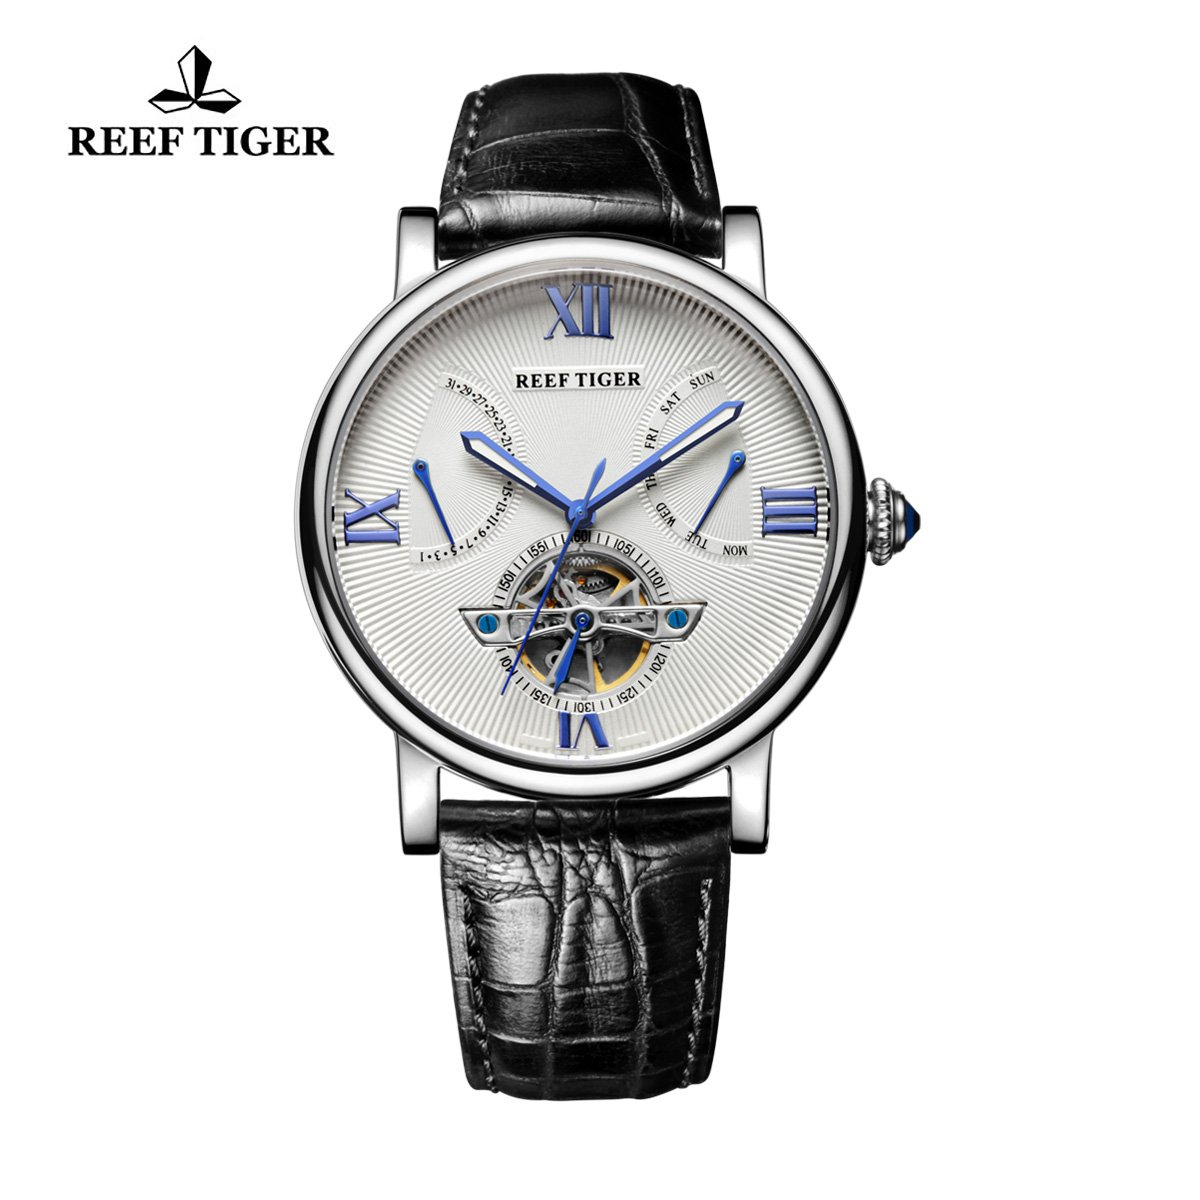 Reef Tiger Men's Tourbillon Watch with Date Day Steel White Dial Leather Strap Watch RGA191